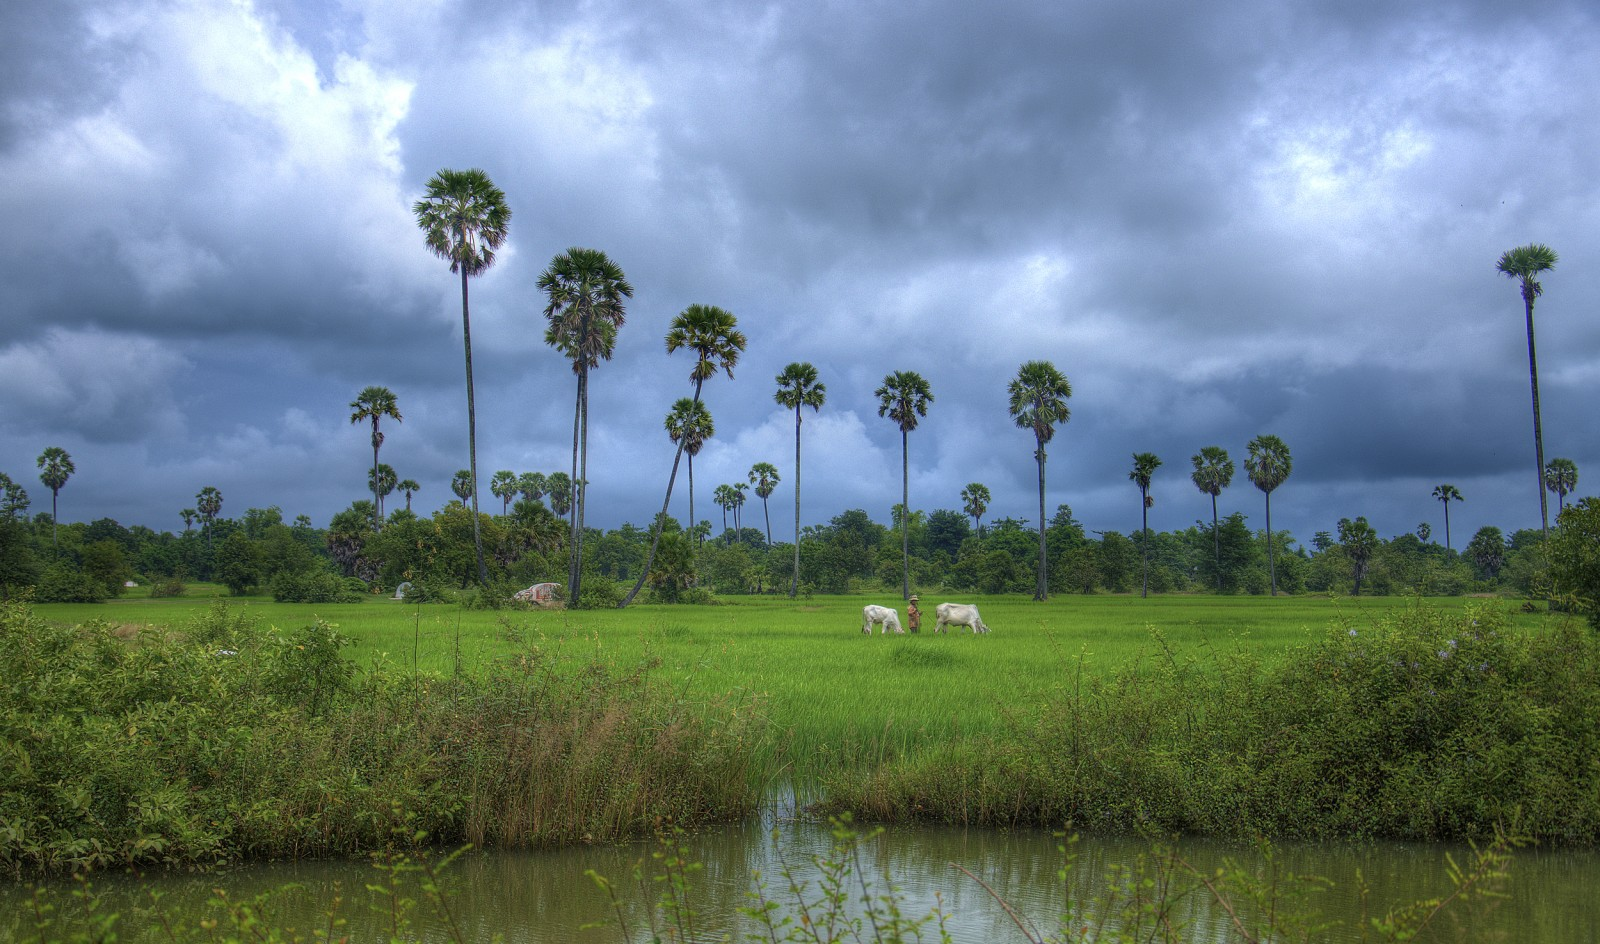 Monsoons over the Rice Paddy